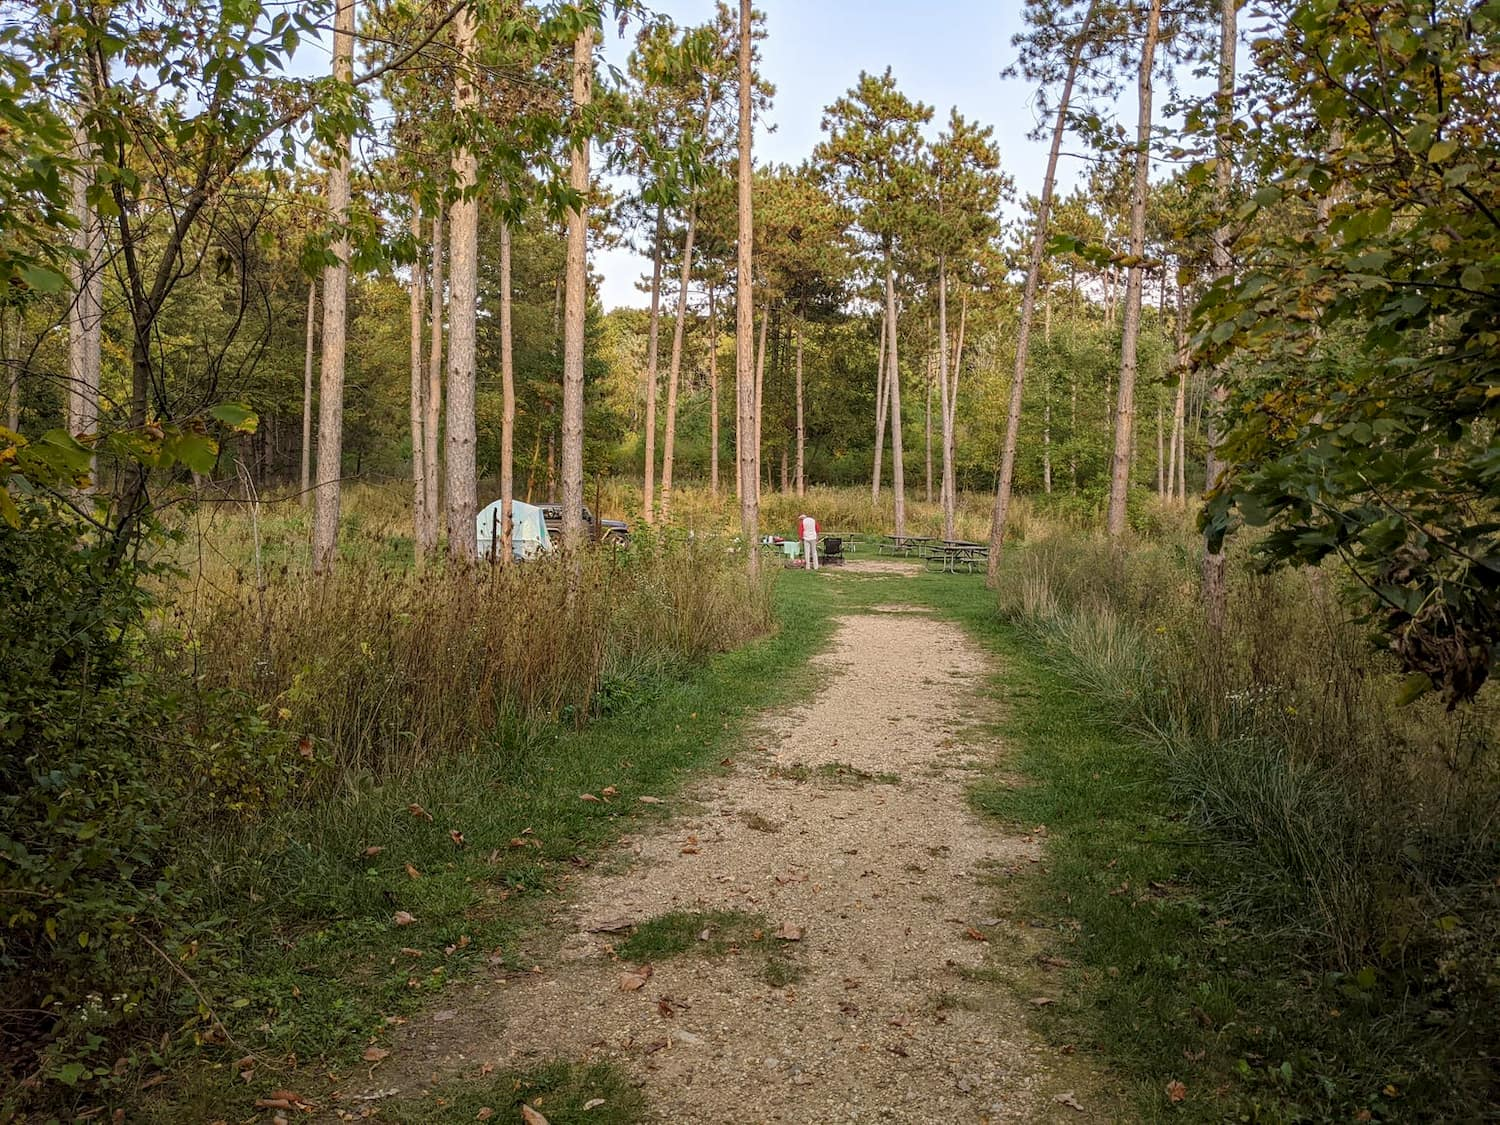 image of trees at campsite